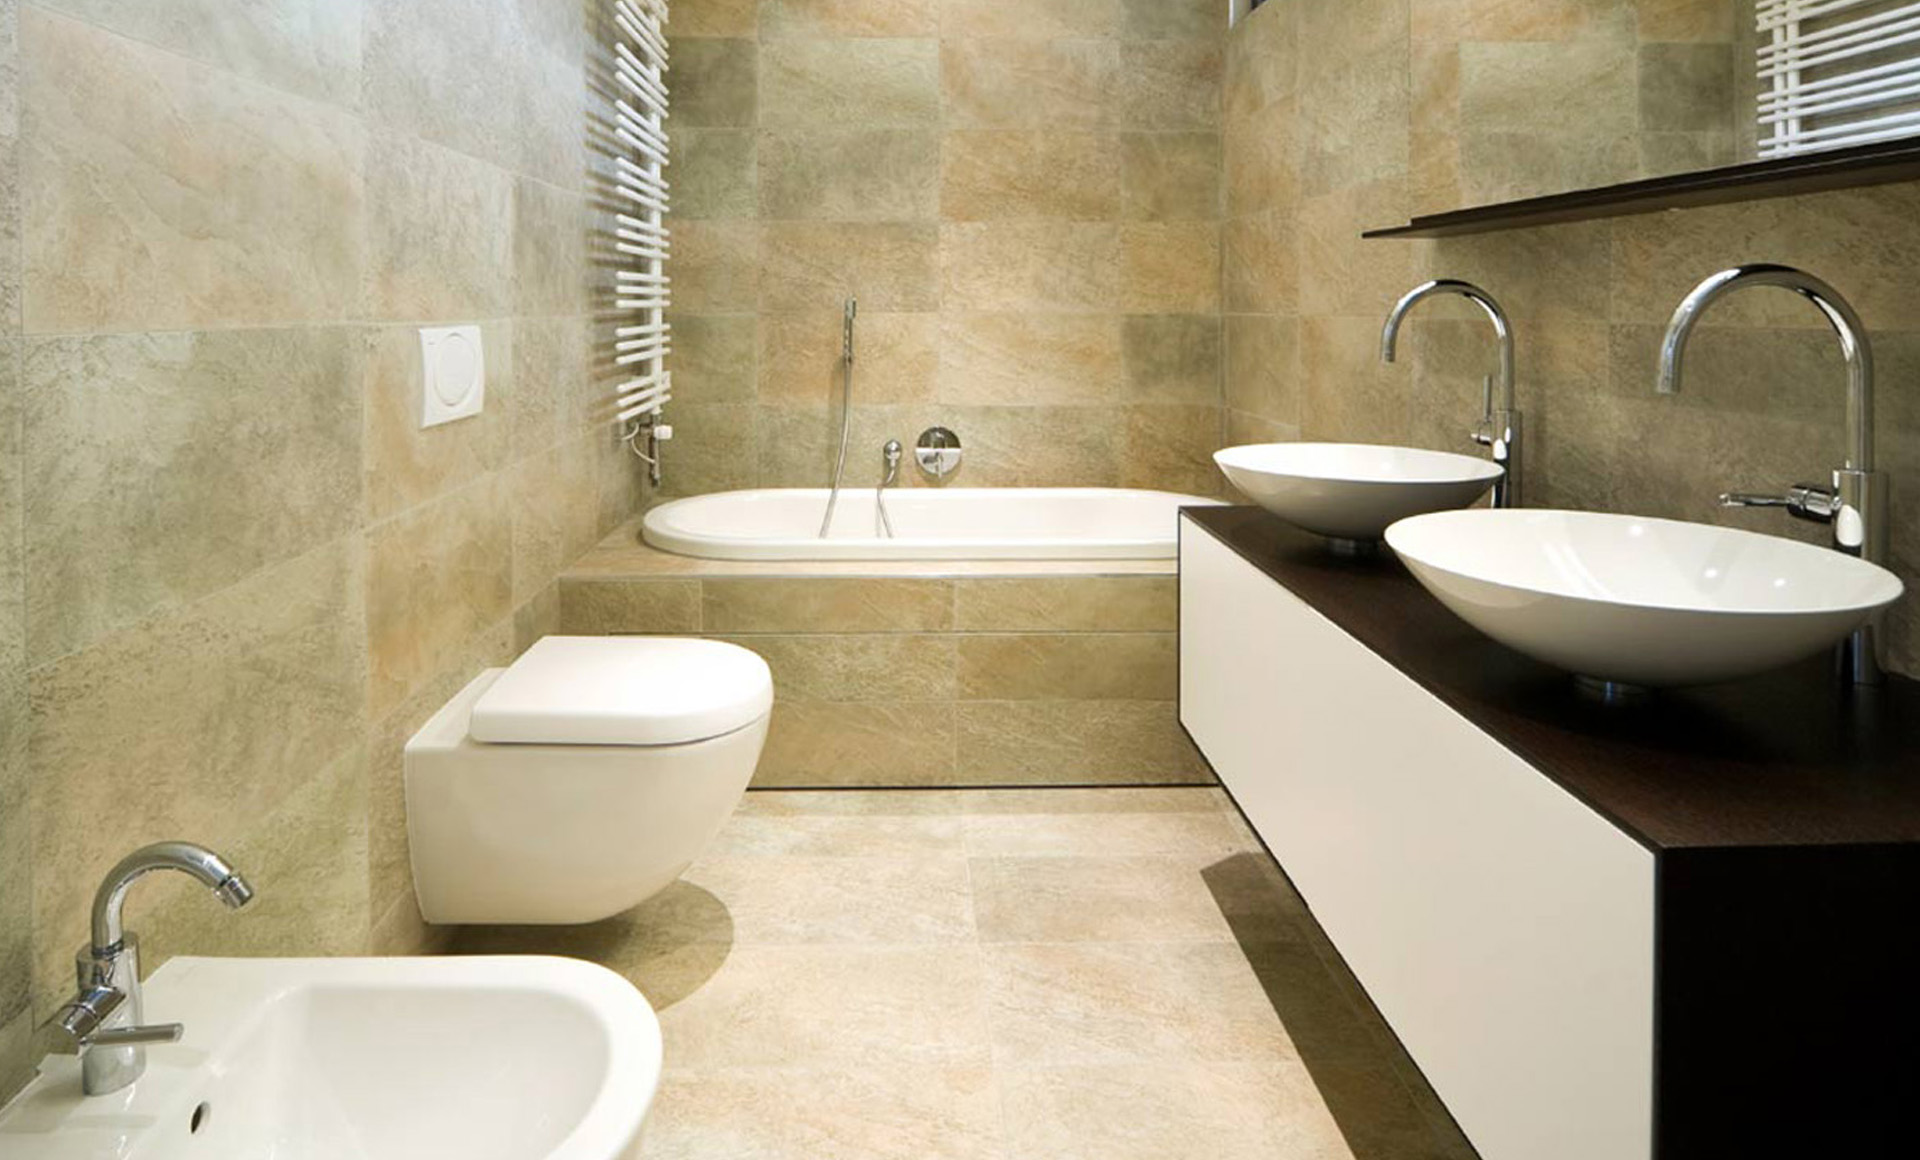 Oswal Bath Fittings